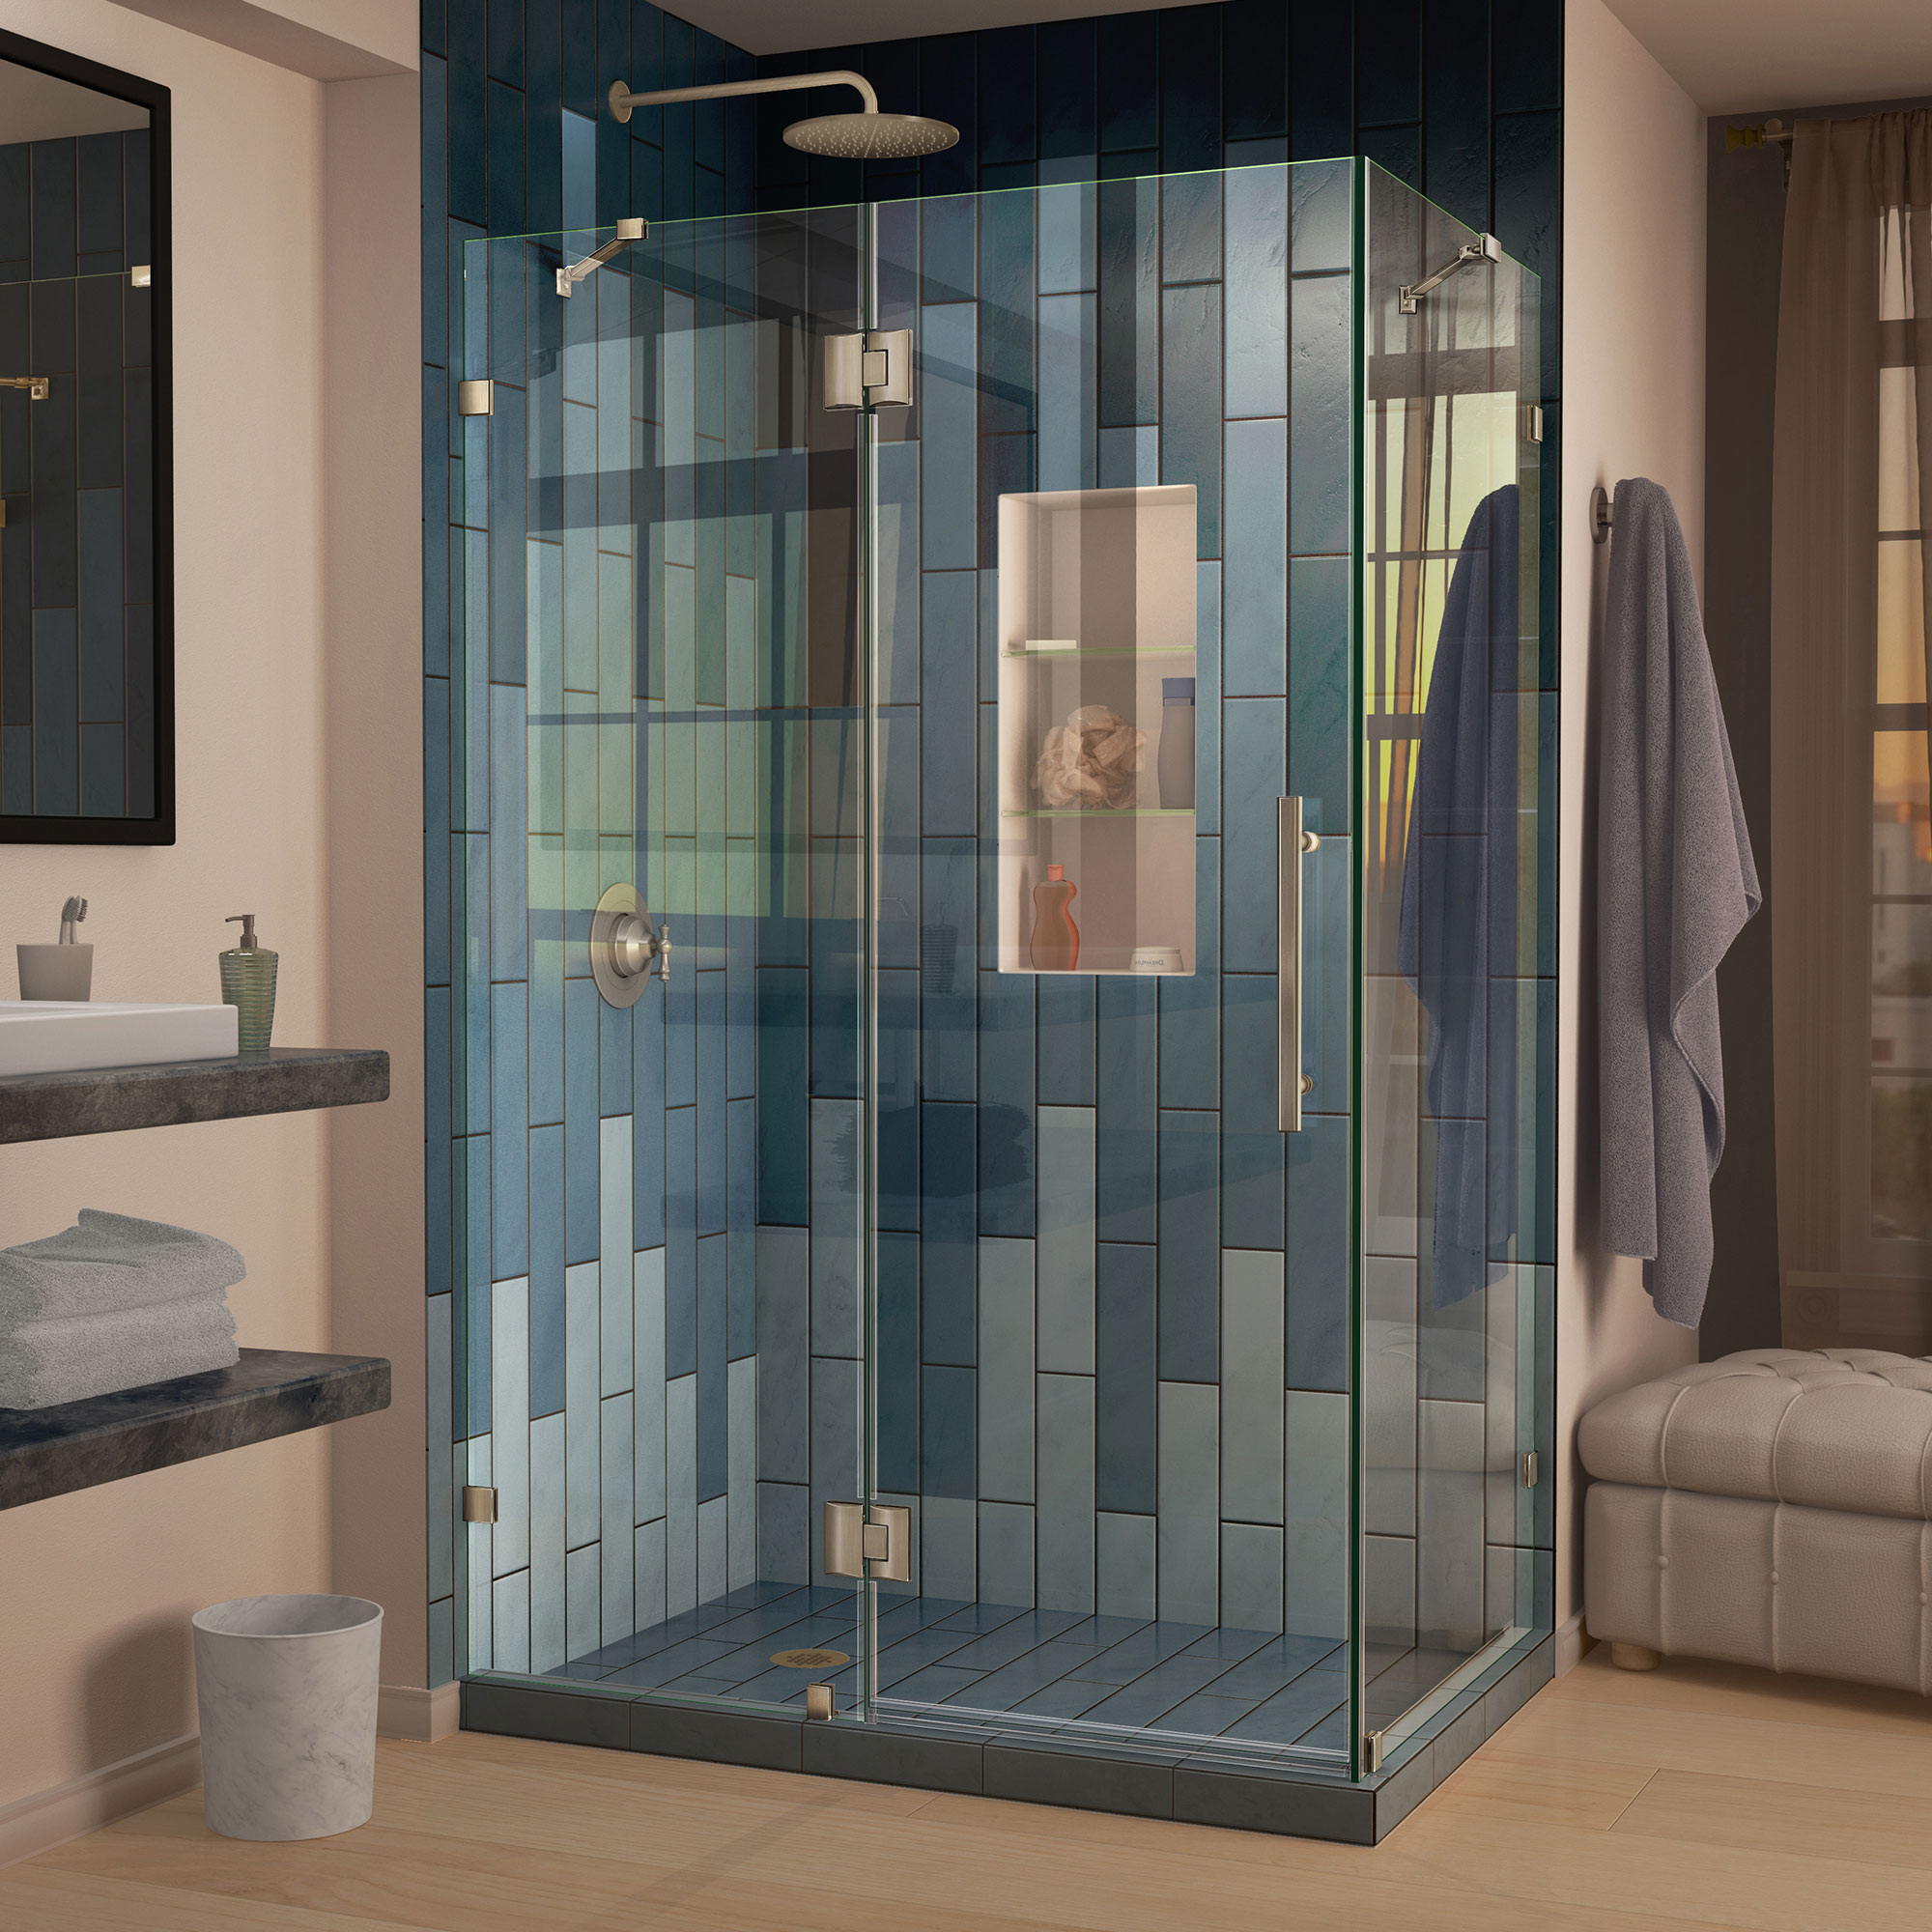 "QuatraLux 34 5/16"" by 46 5/16"" Frameless Hinged Shower Enclosure, Clear 3/8"" Glass Shower, Chrome"